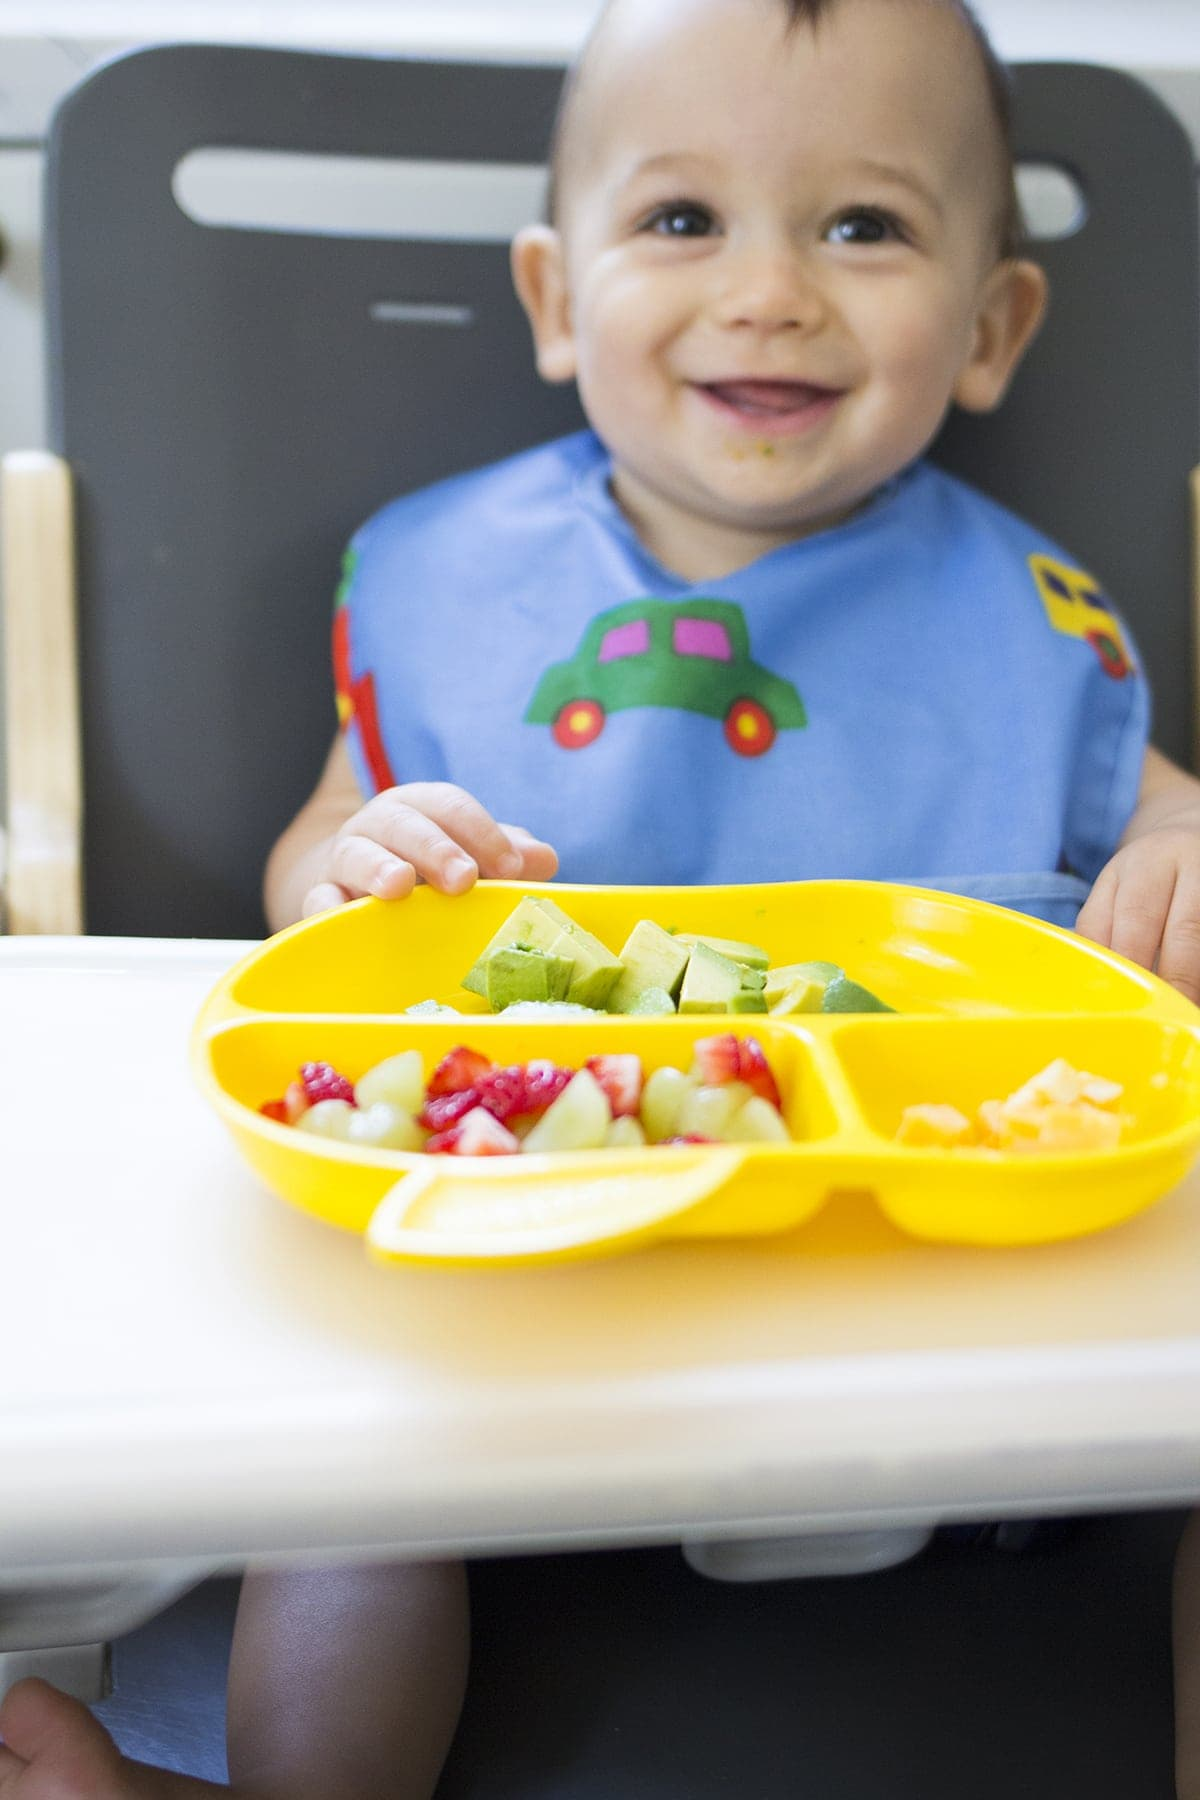 Lunch Ideas for Babies